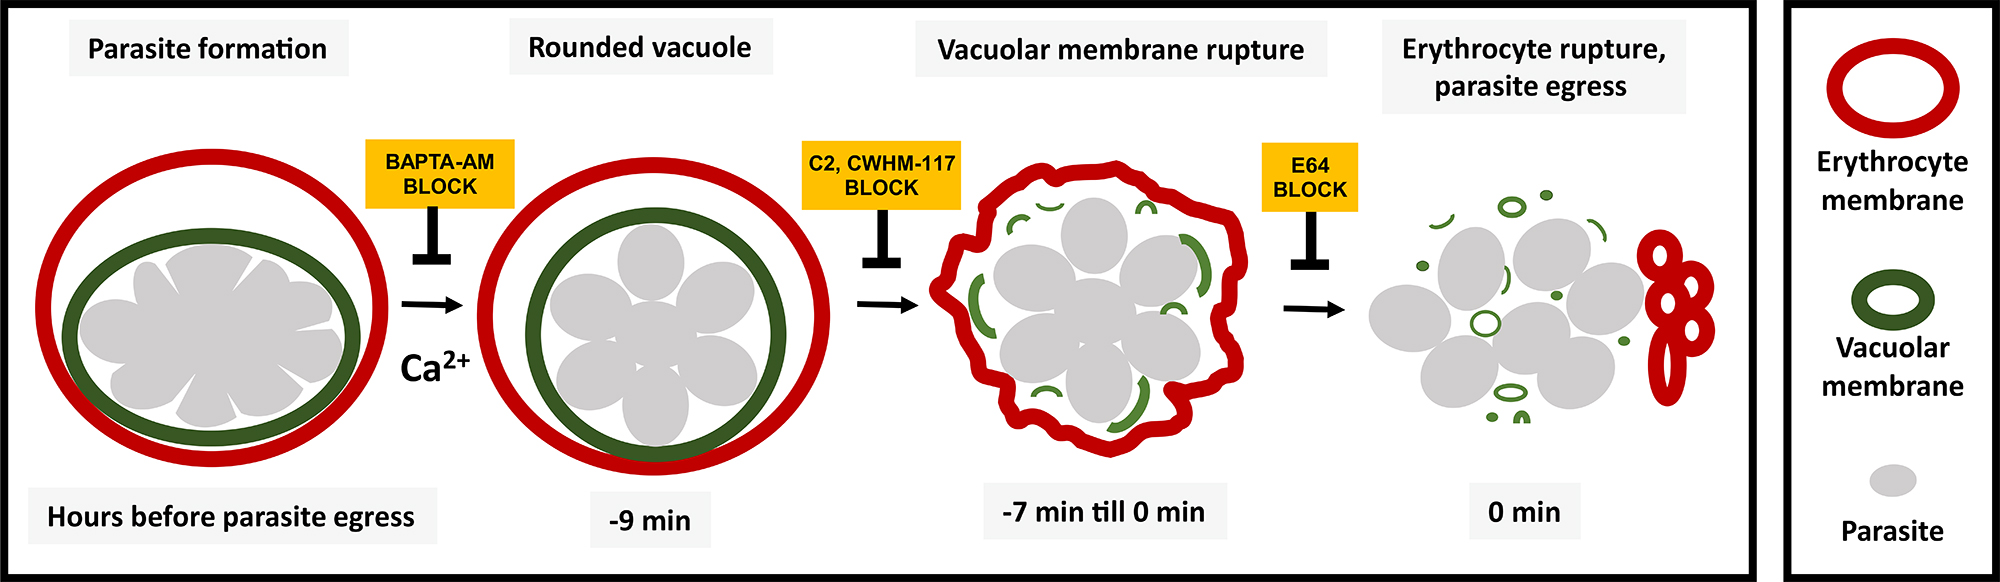 Illustration showing sequence of malaria parasite release